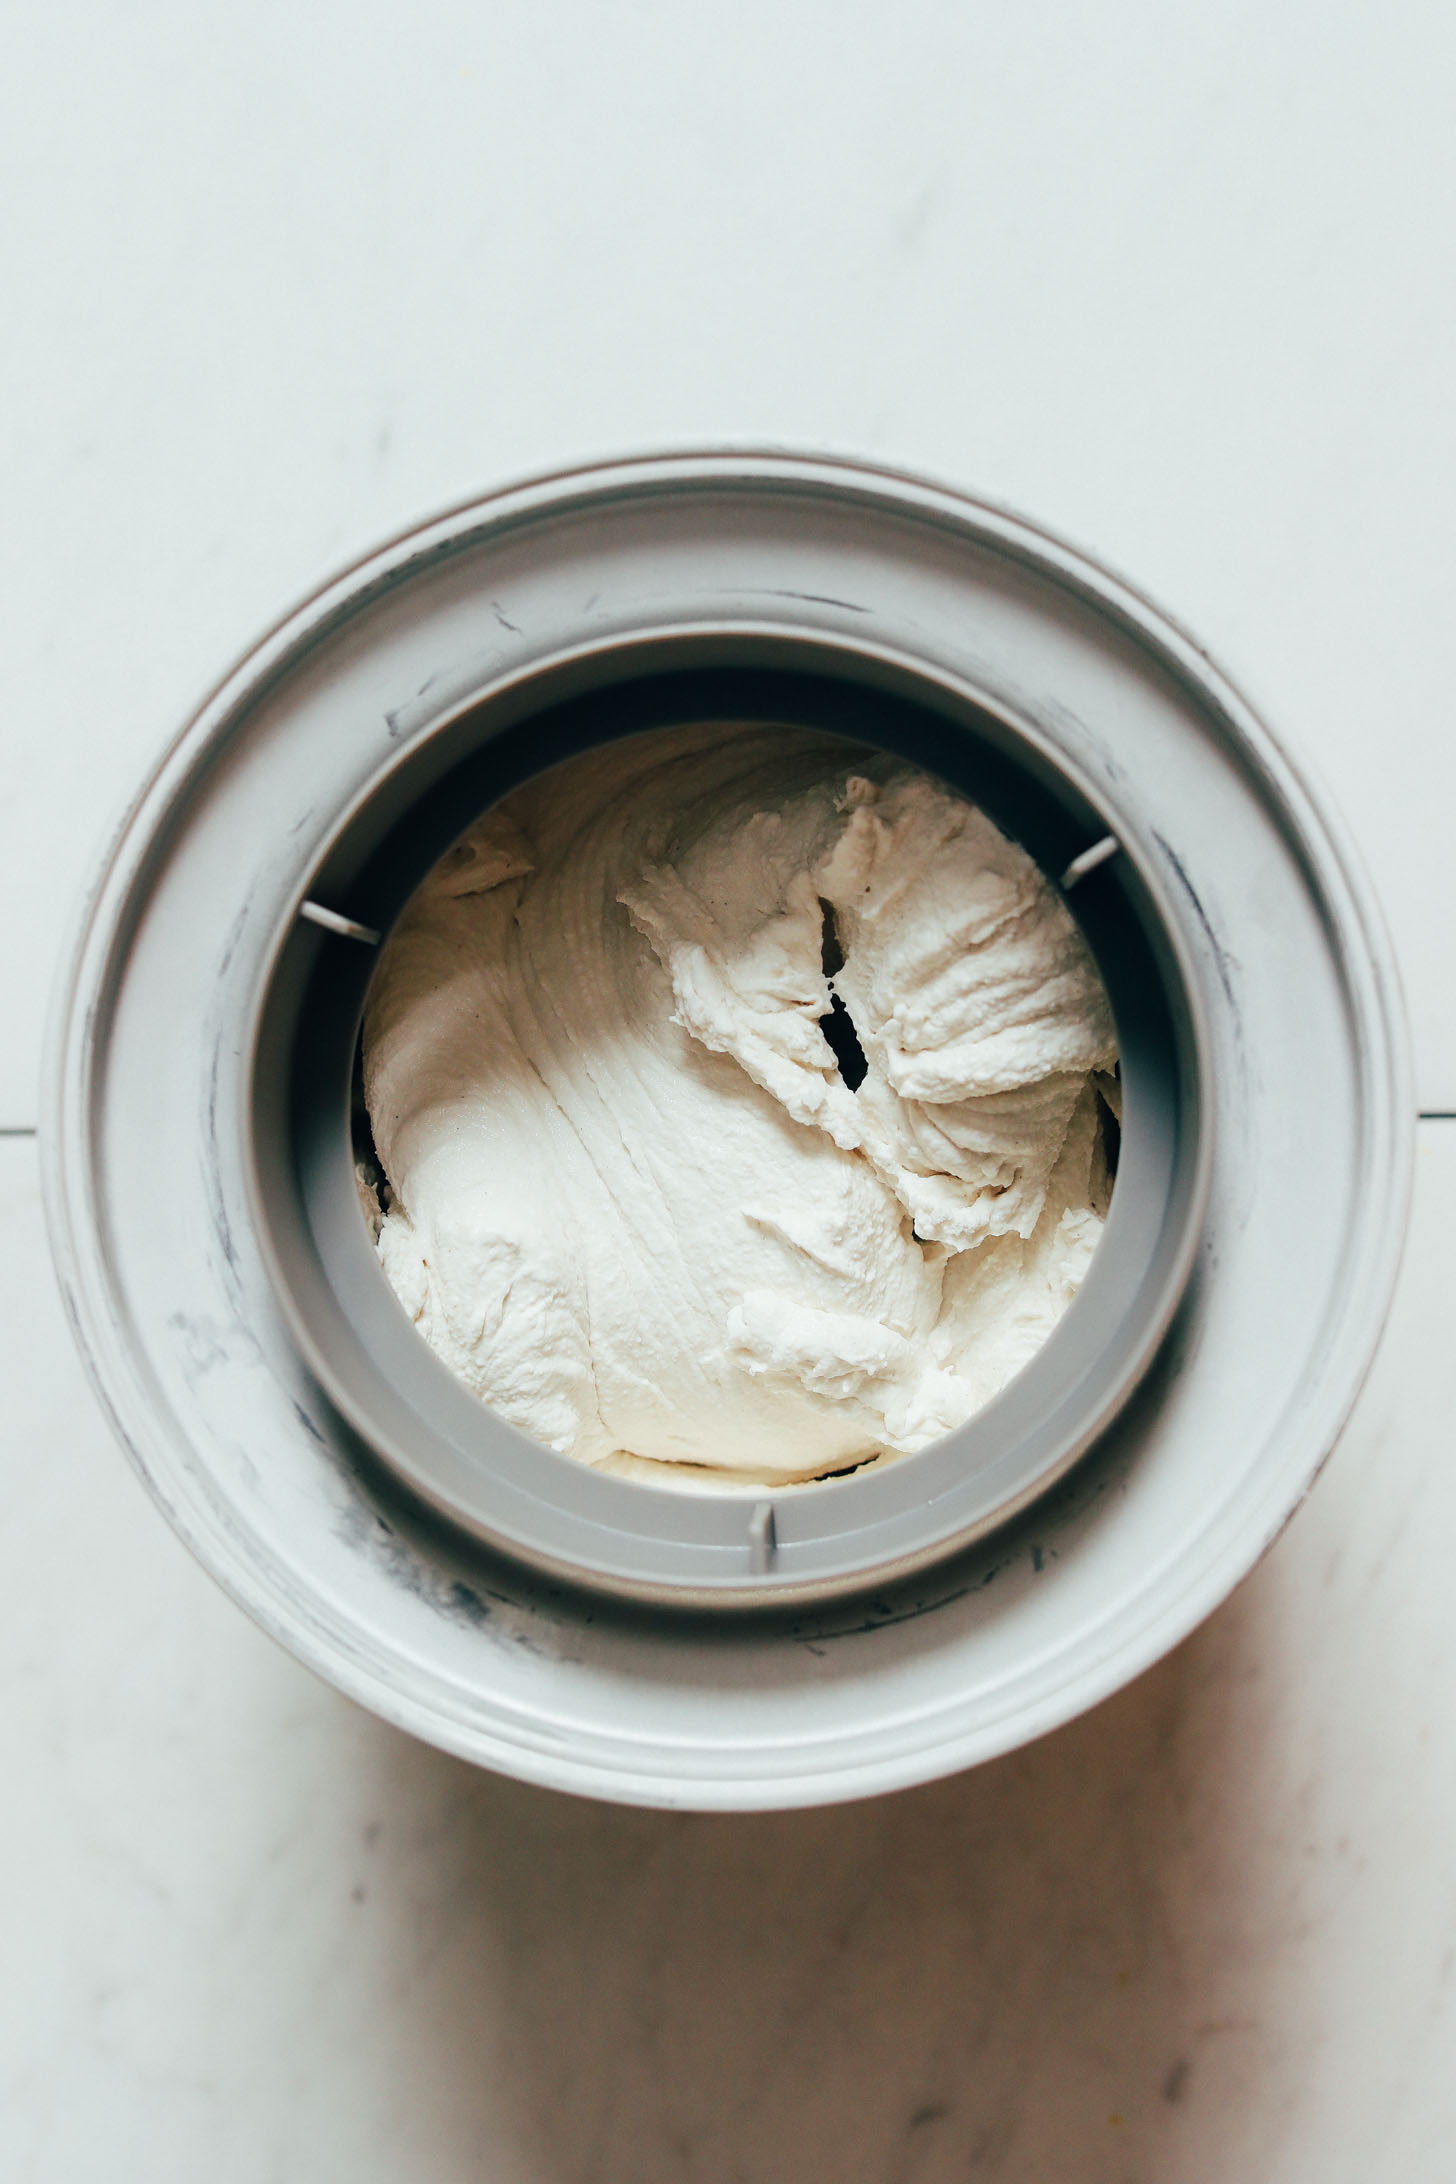 Vegan vanilla ice cream churning in an ice cream maker